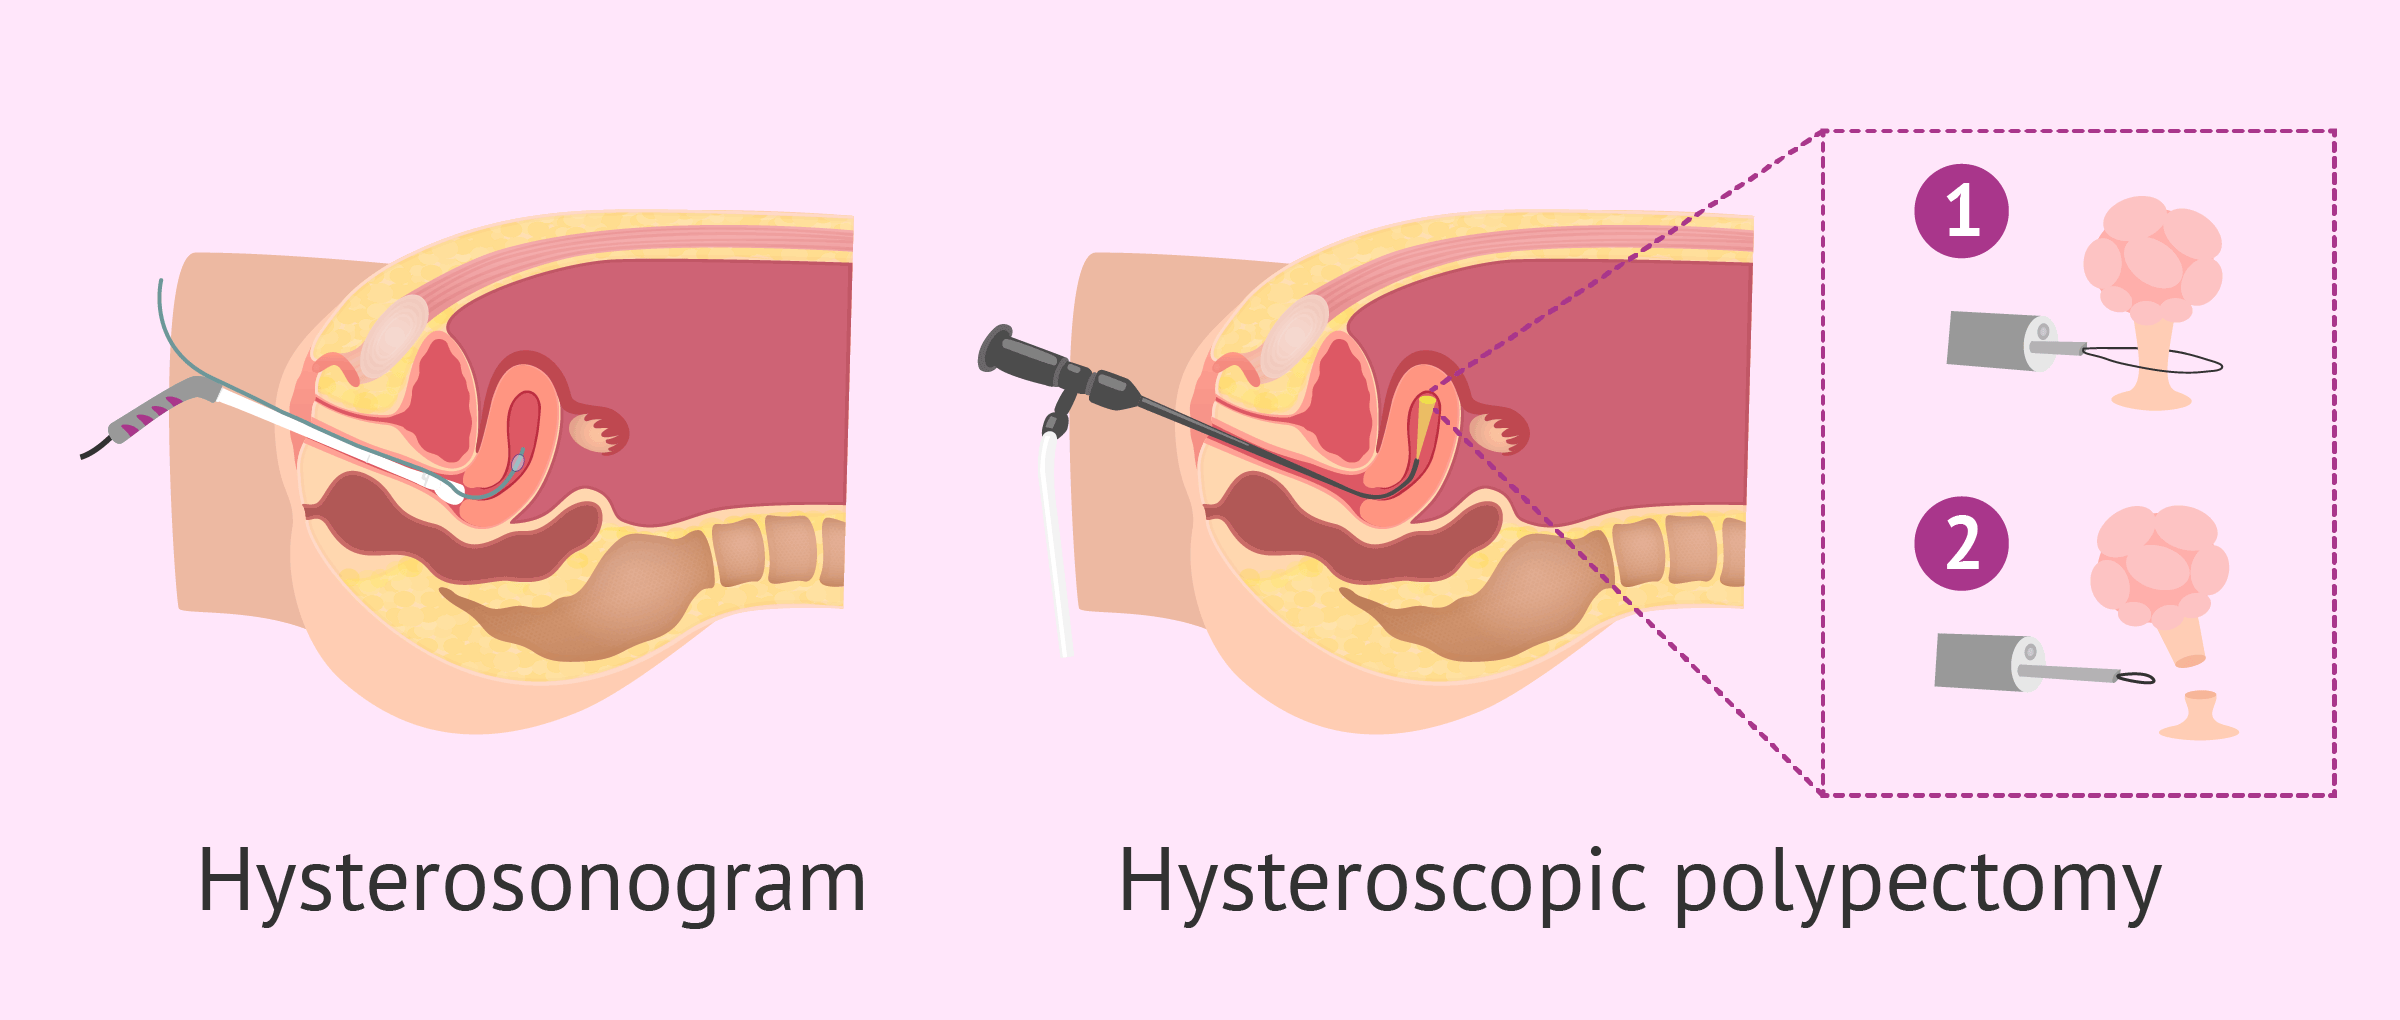 Surgery for endometrial polyp removal